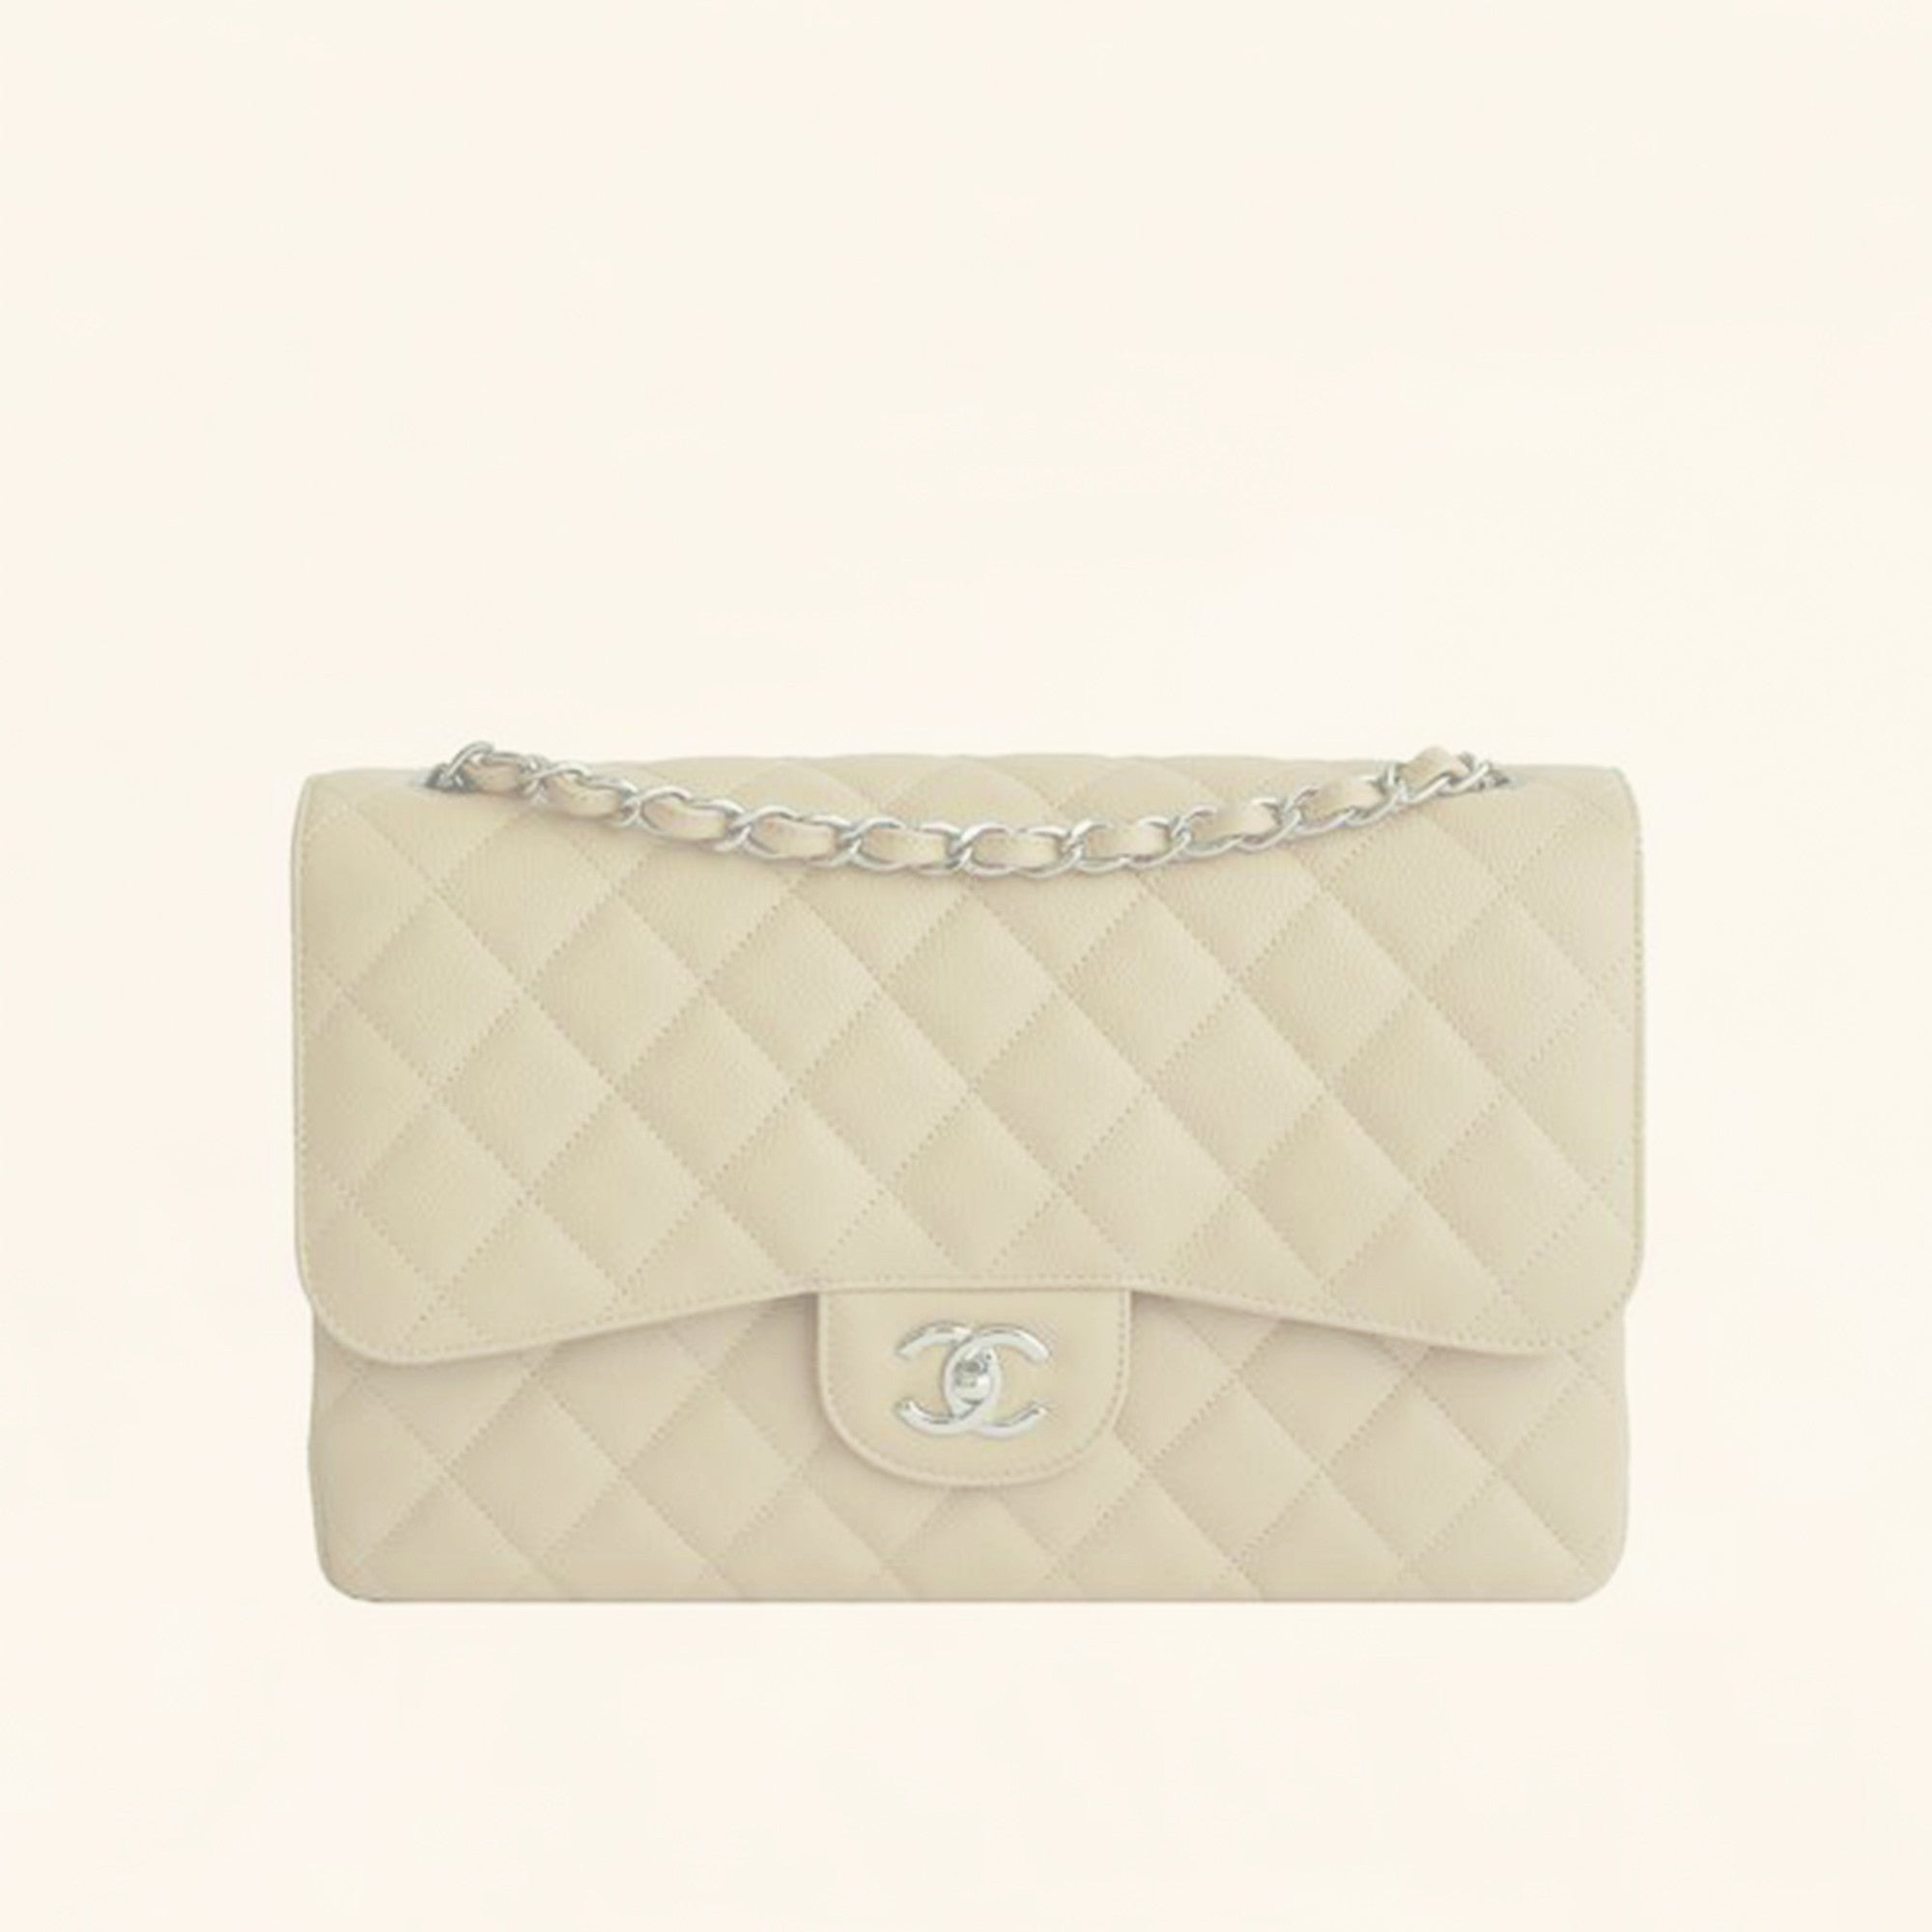 b8755fc96d14 Chanel | Beige Caviar Classic Double Flap Bag | Jumbo - The-Collectory